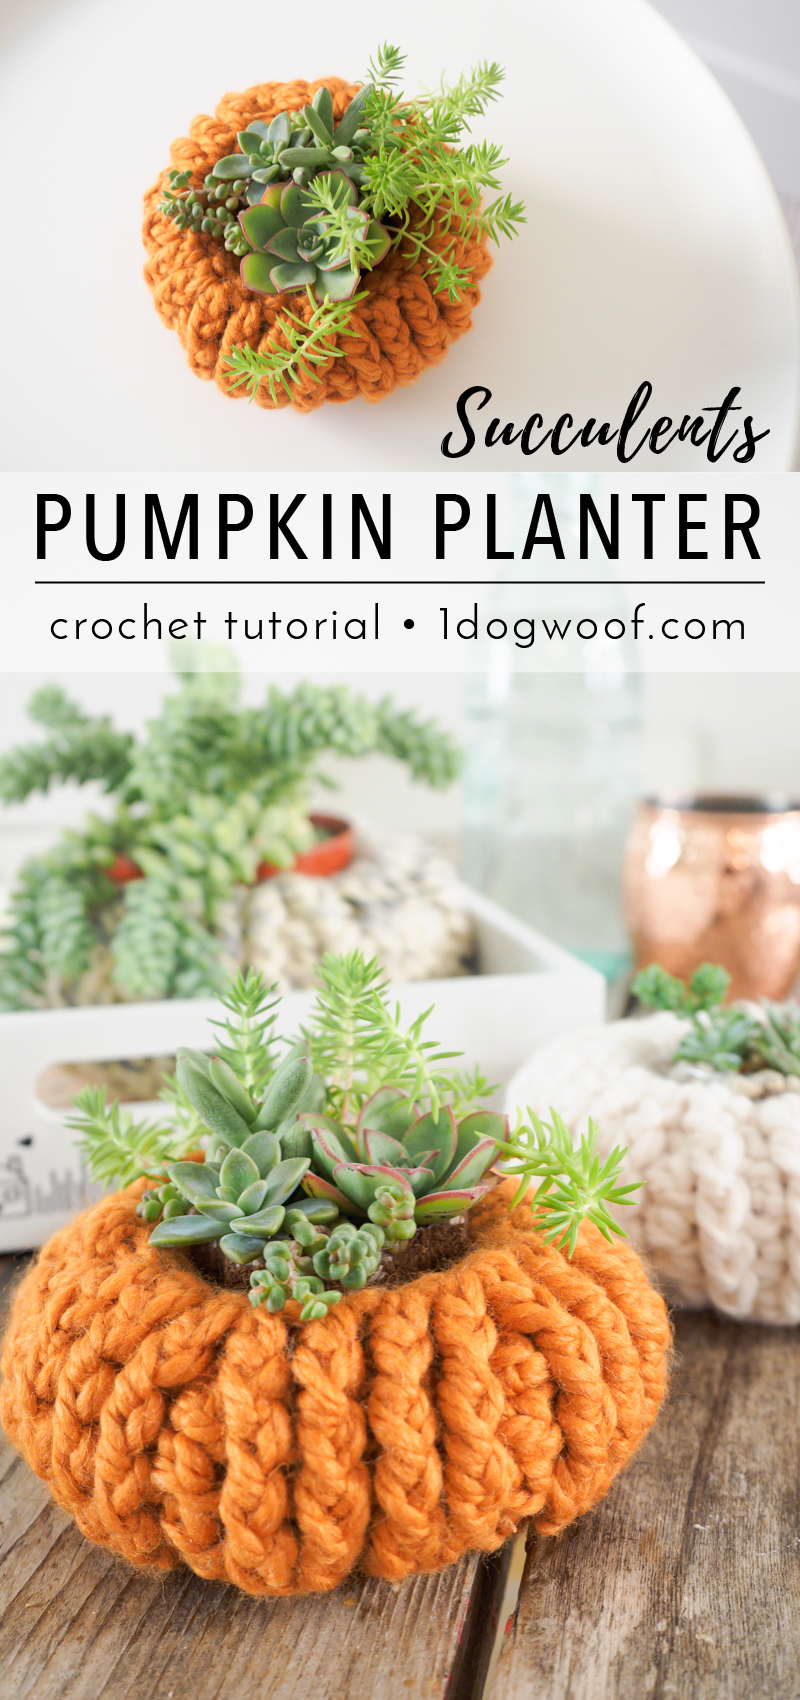 Simple crochet succulents pumpkin planters. Free pattern at 1dogwoof.com